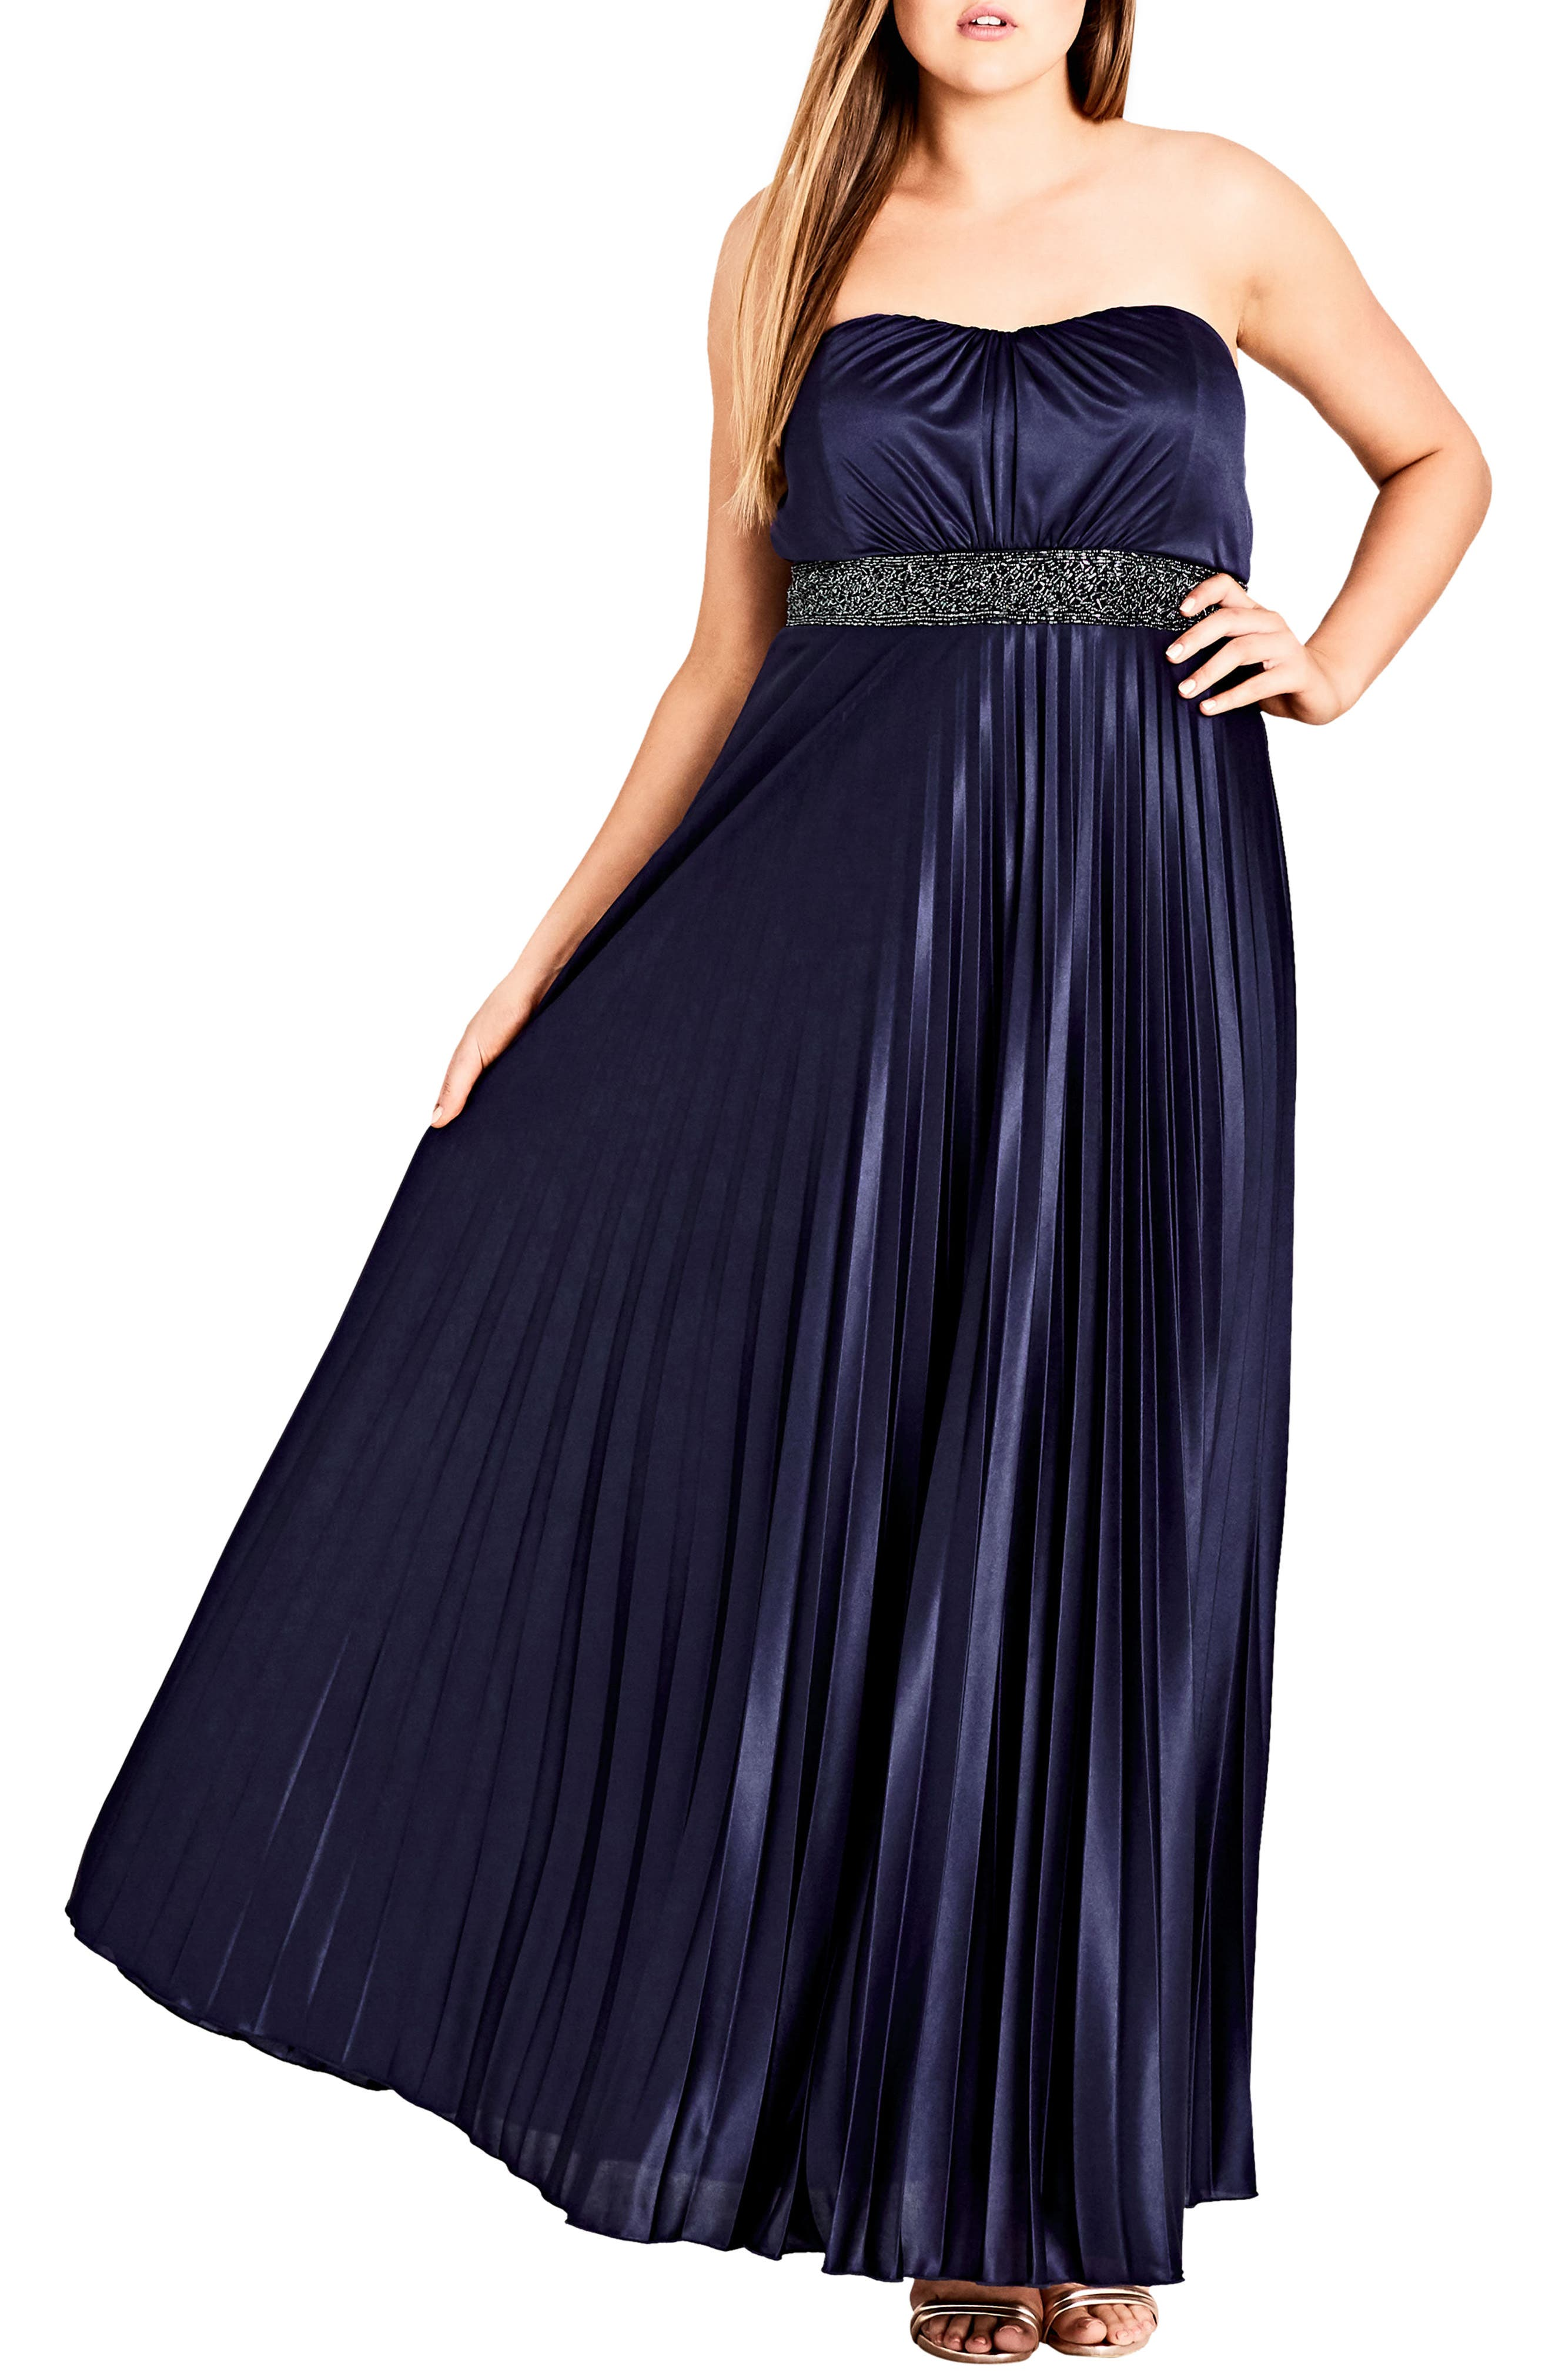 Plus Size City Chic Helena Embellished Strapless Maxi Dress, Blue